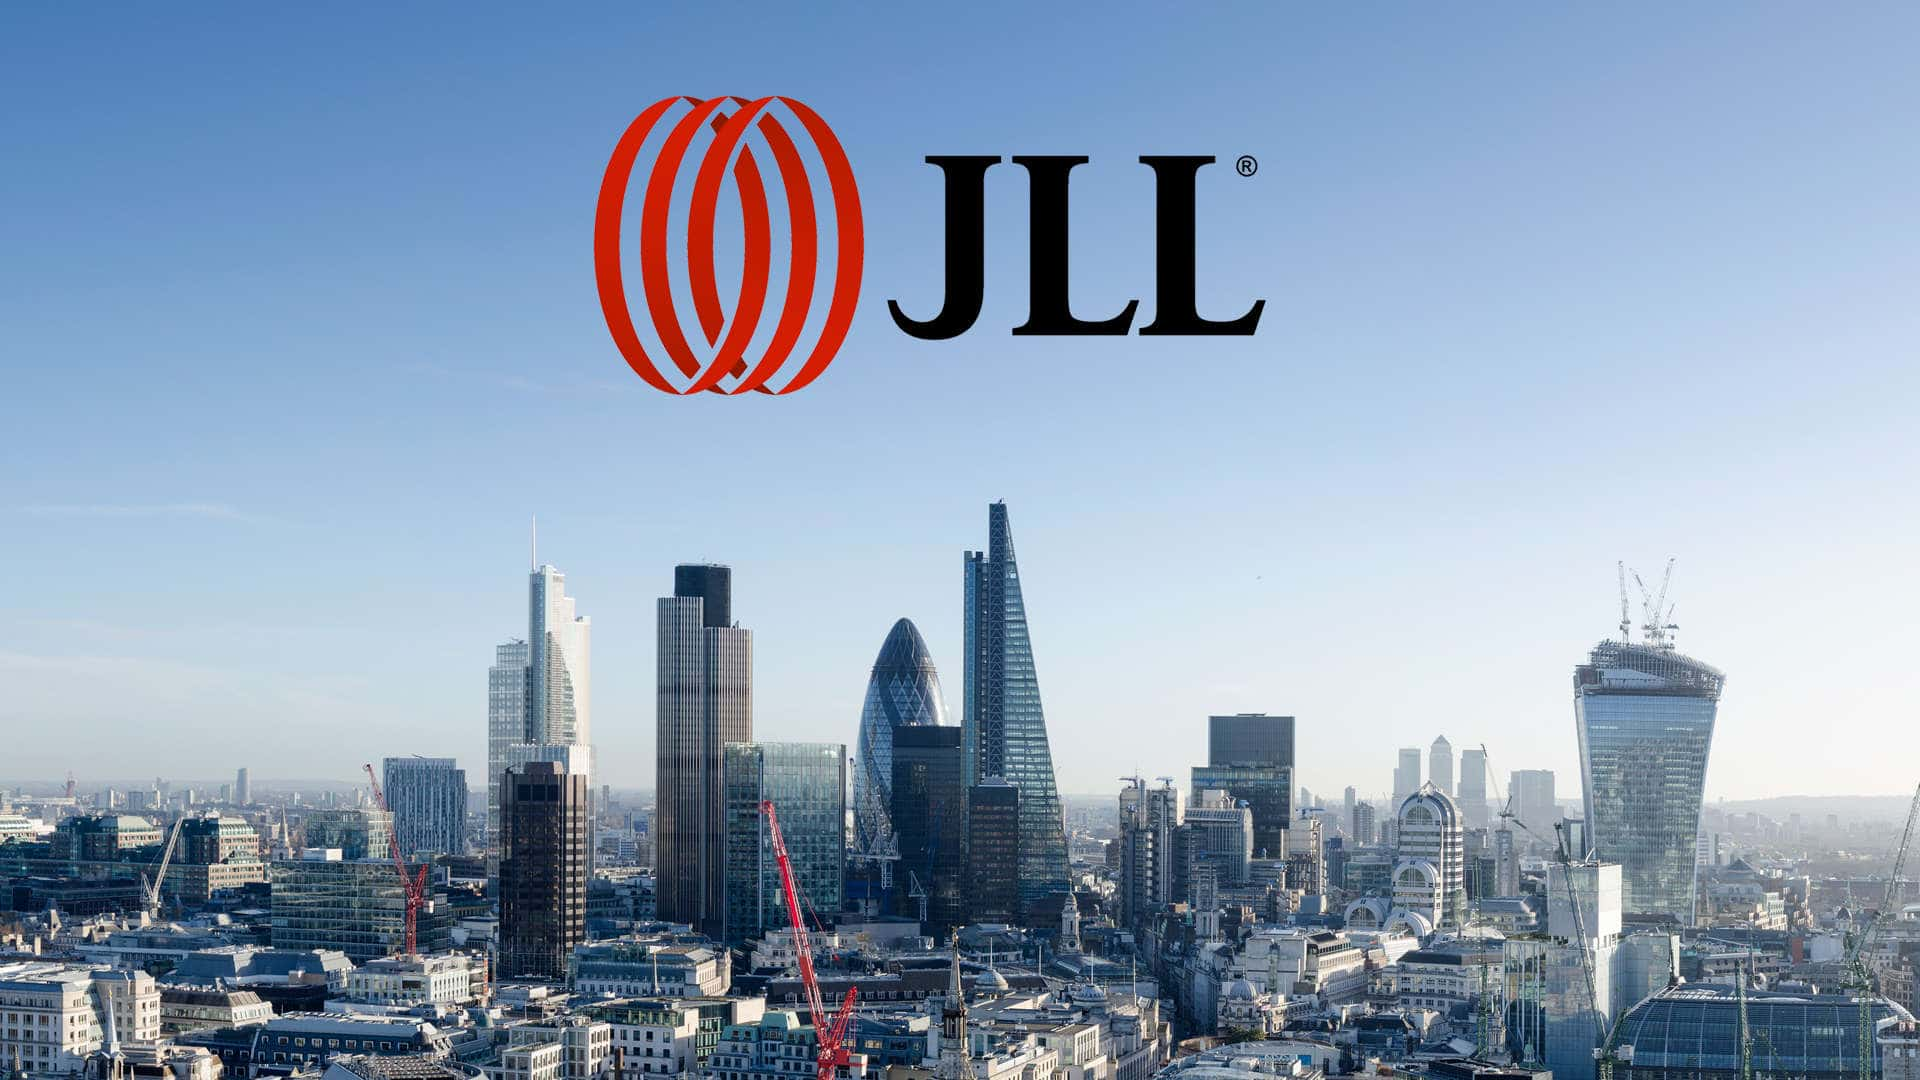 JLL-London-is-the-Top-'Established-World-City%u2019